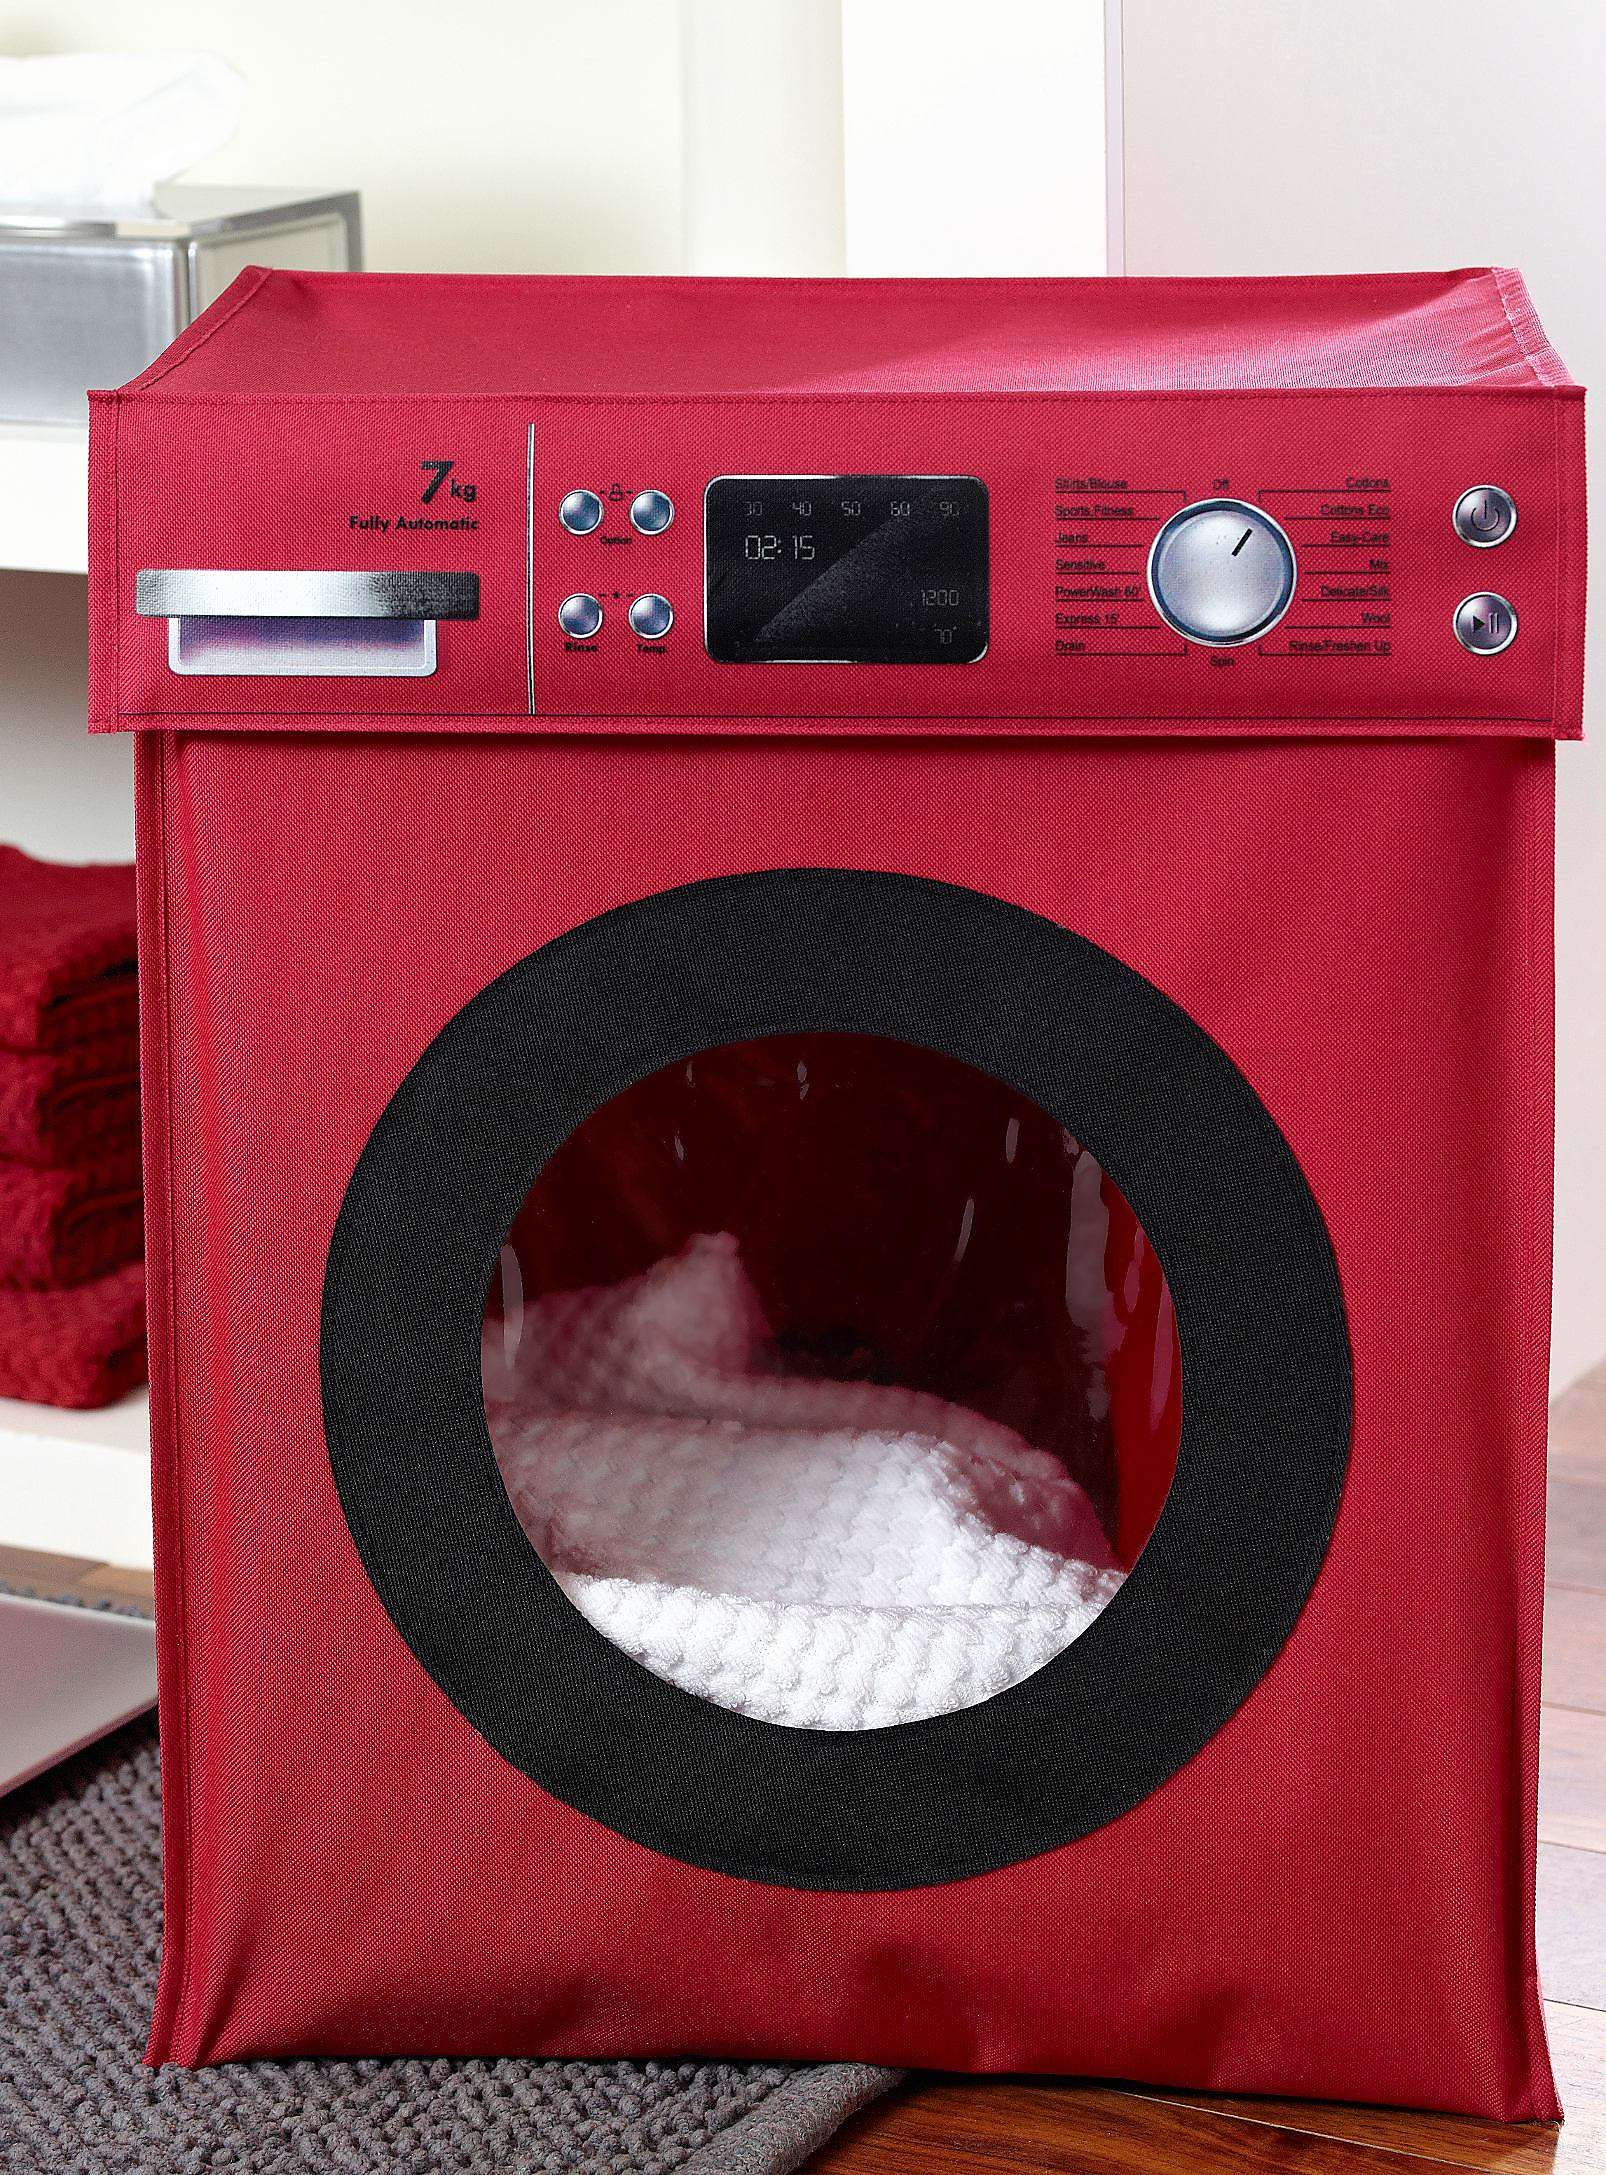 le panier linge machine laver rouge vif accessoires de salle de bains simons cool. Black Bedroom Furniture Sets. Home Design Ideas